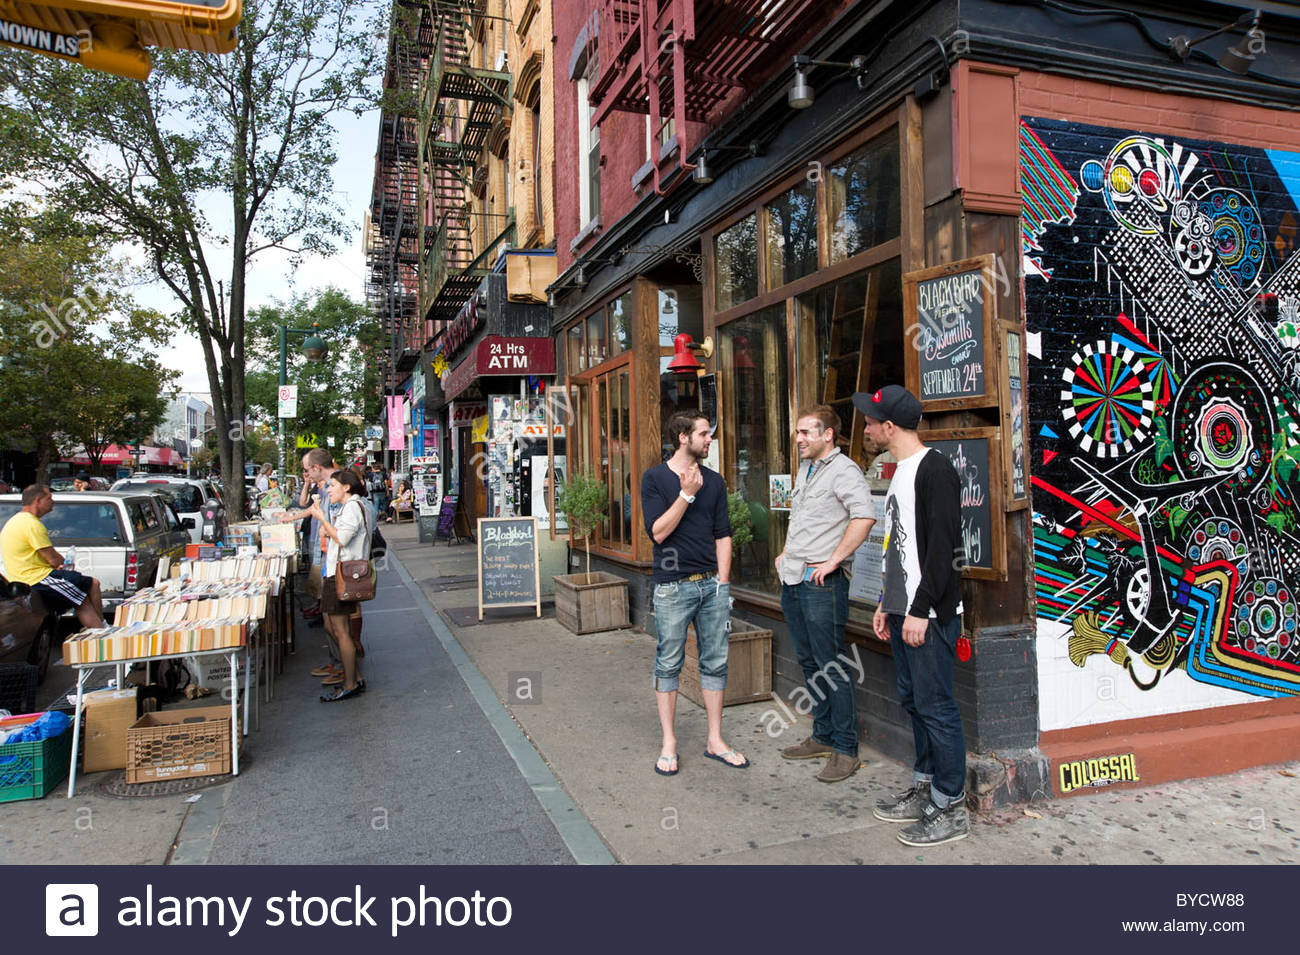 Fashionable Shopping Area In New York